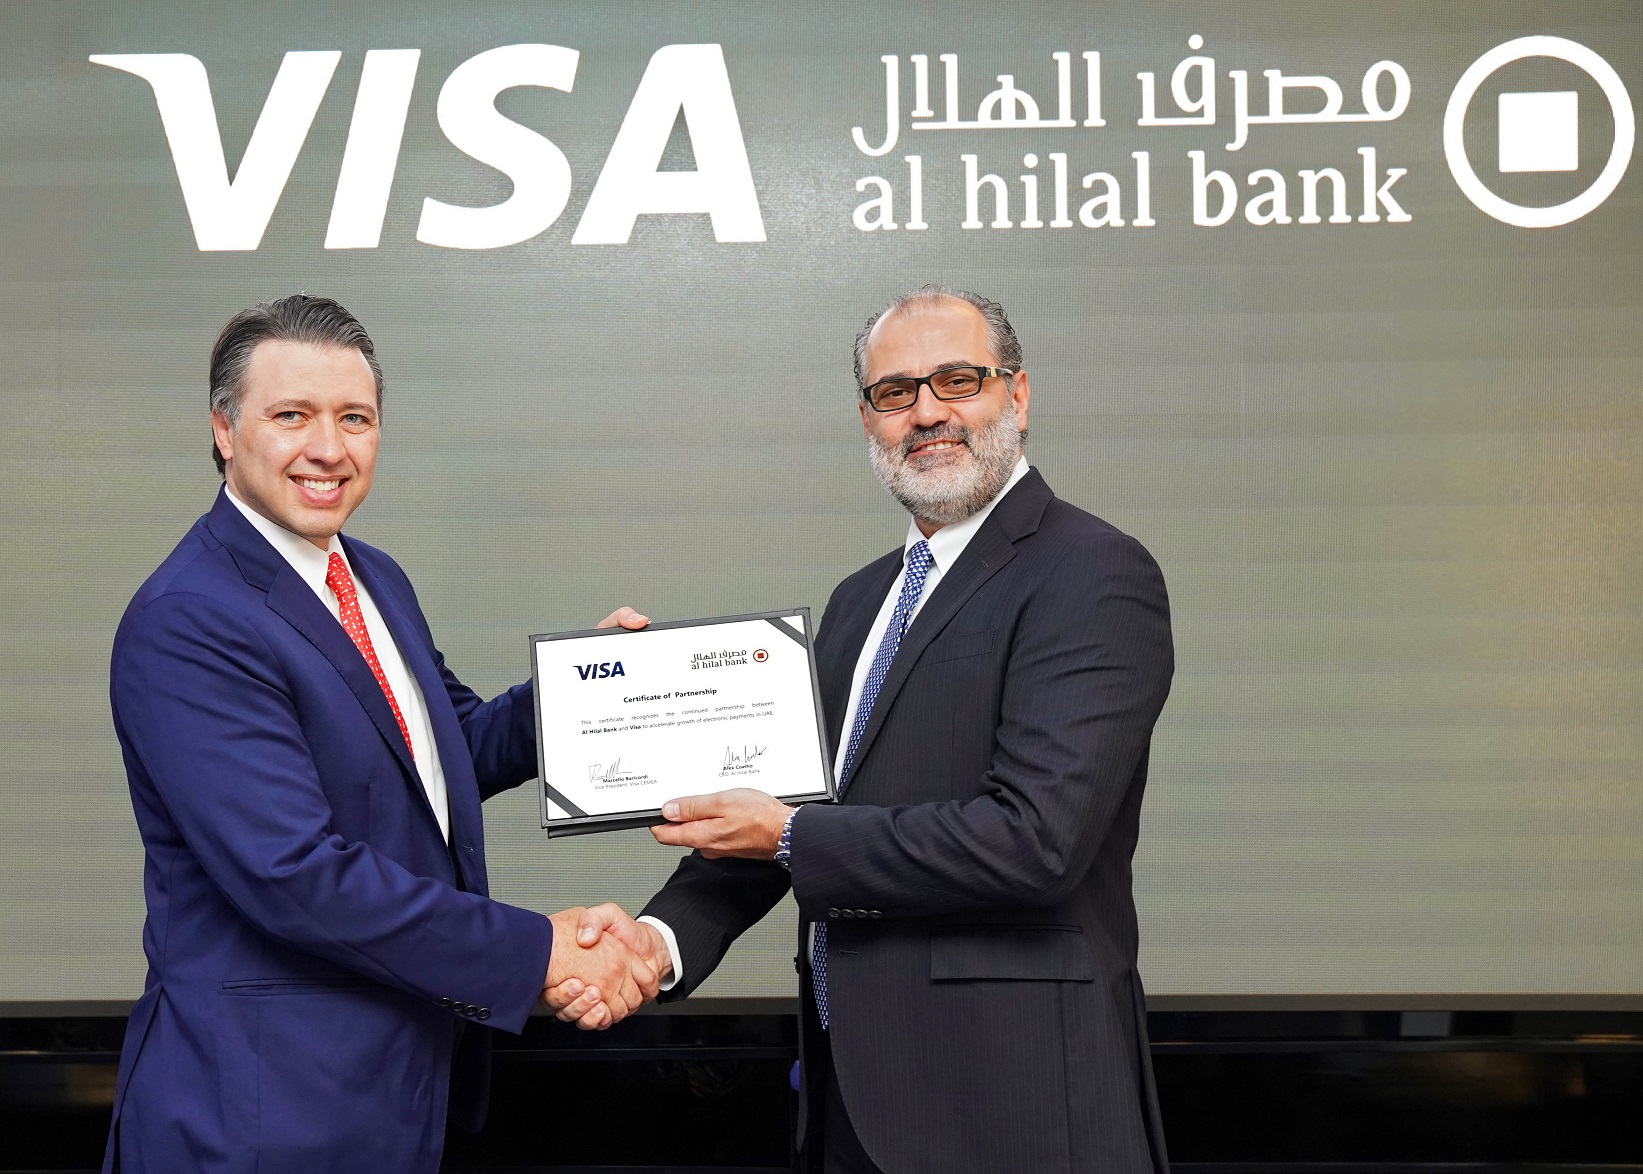 a review of al hilal bank Listings of issuers under review for rating changes  al hilal bank pjsc: al hilal bank's capital increase is credit positive moody's investors service.